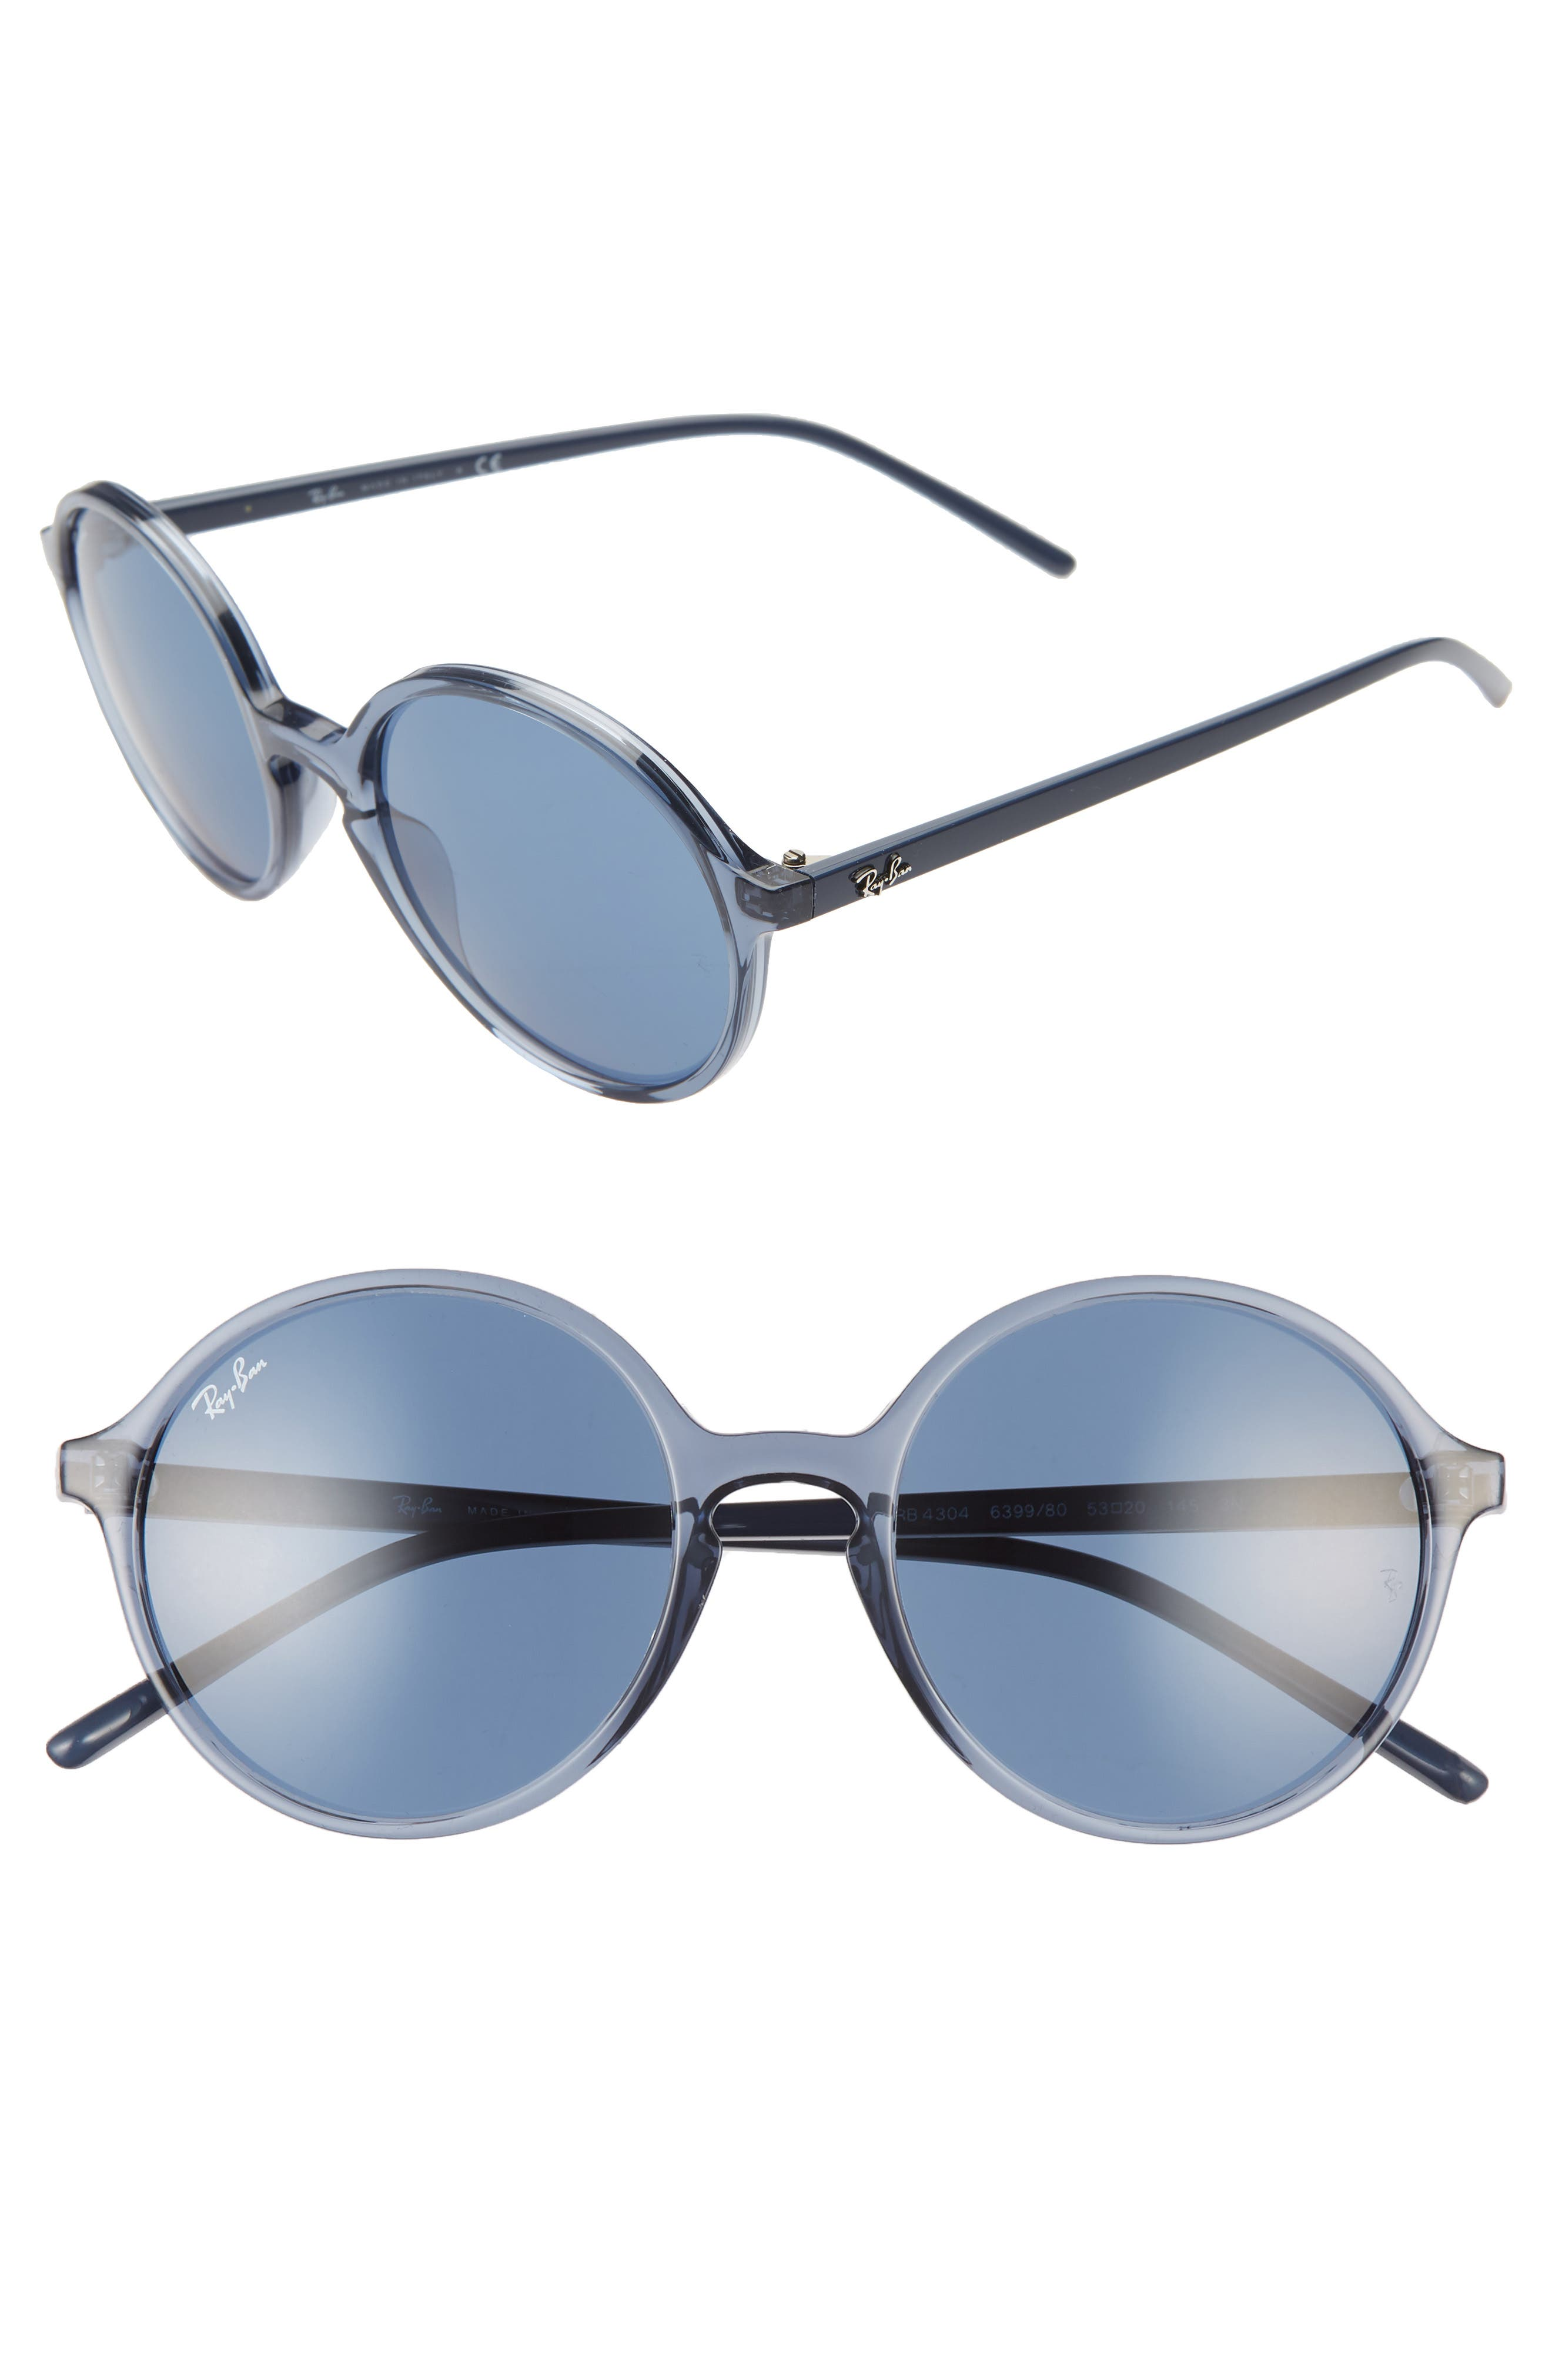 Ray-Ban 5m Round Sunglasses - Trasparent Blue/ Blue Solid